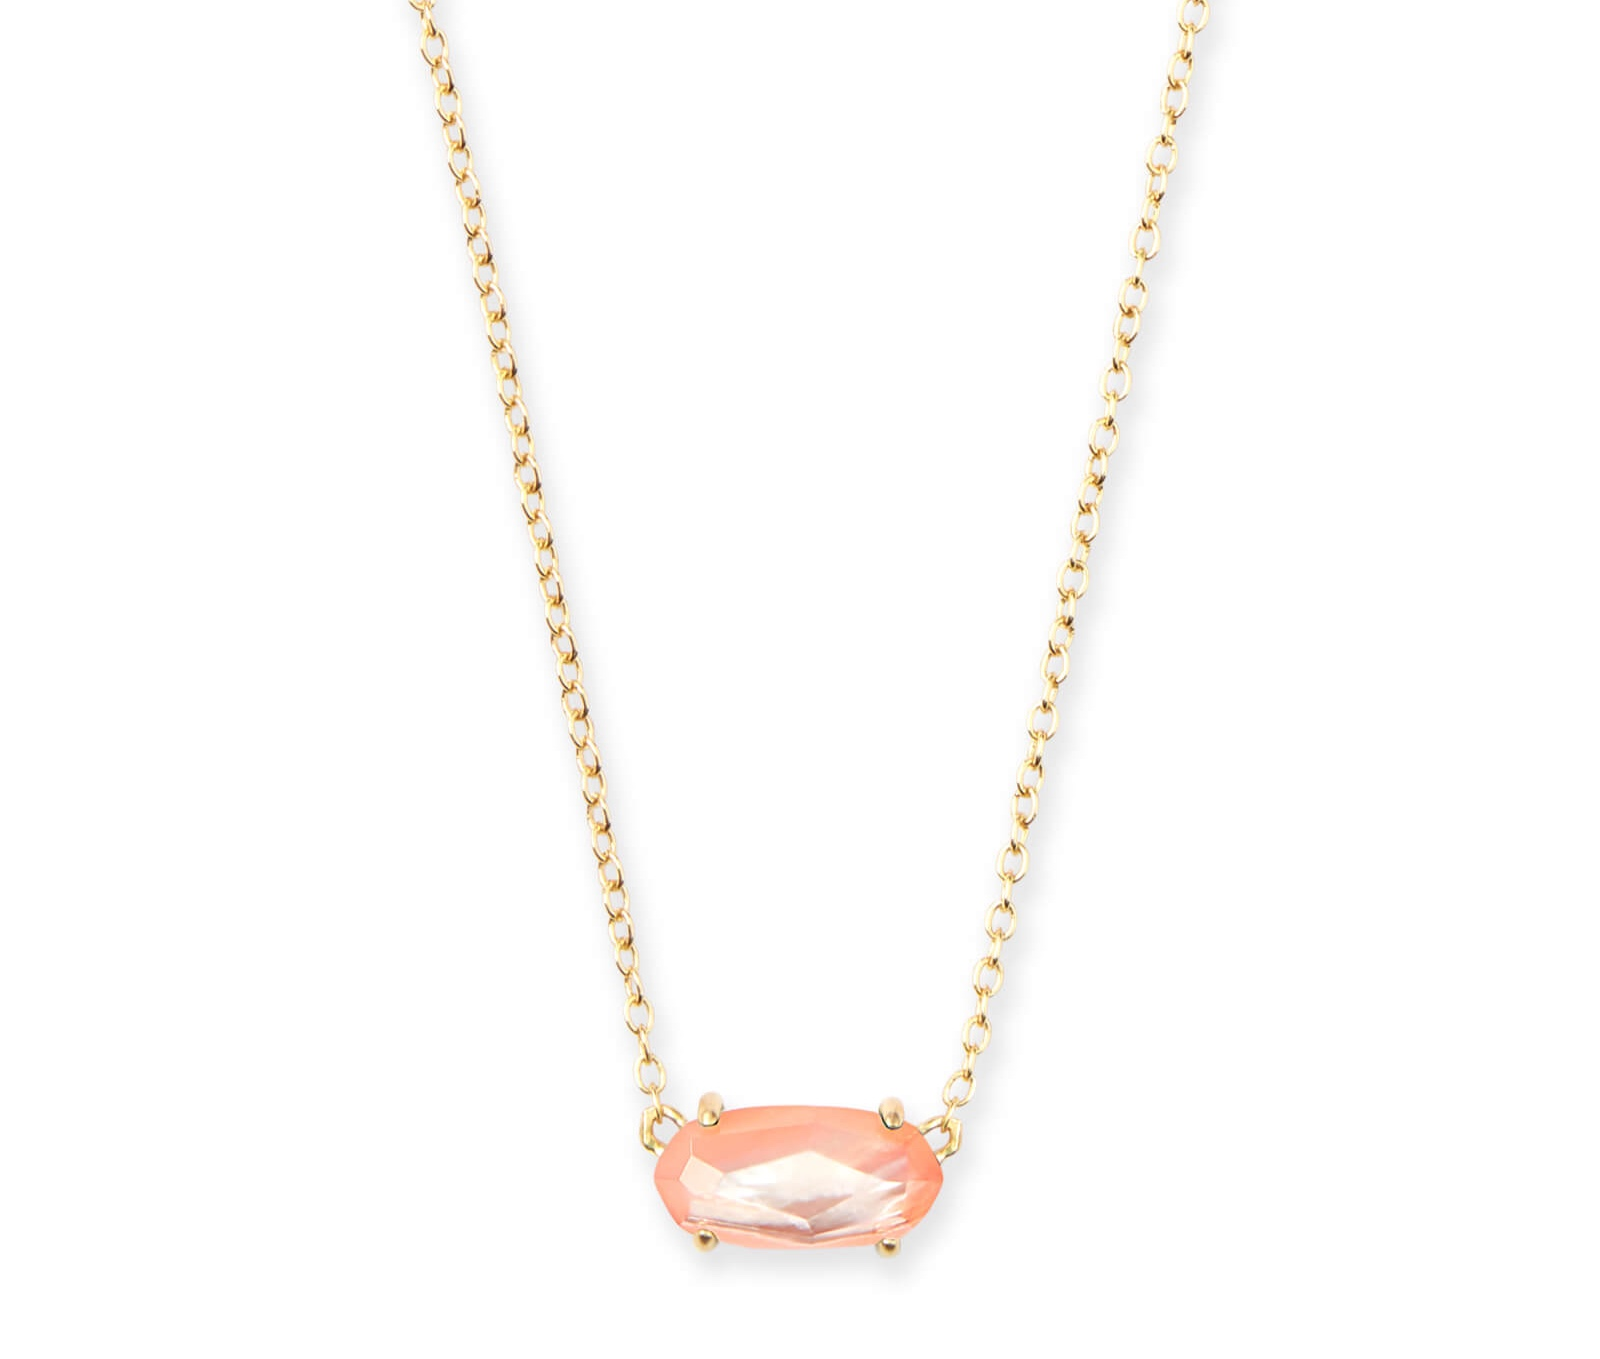 kendra-scott-ever-necklace-gold-salmon-00-lg.jpg